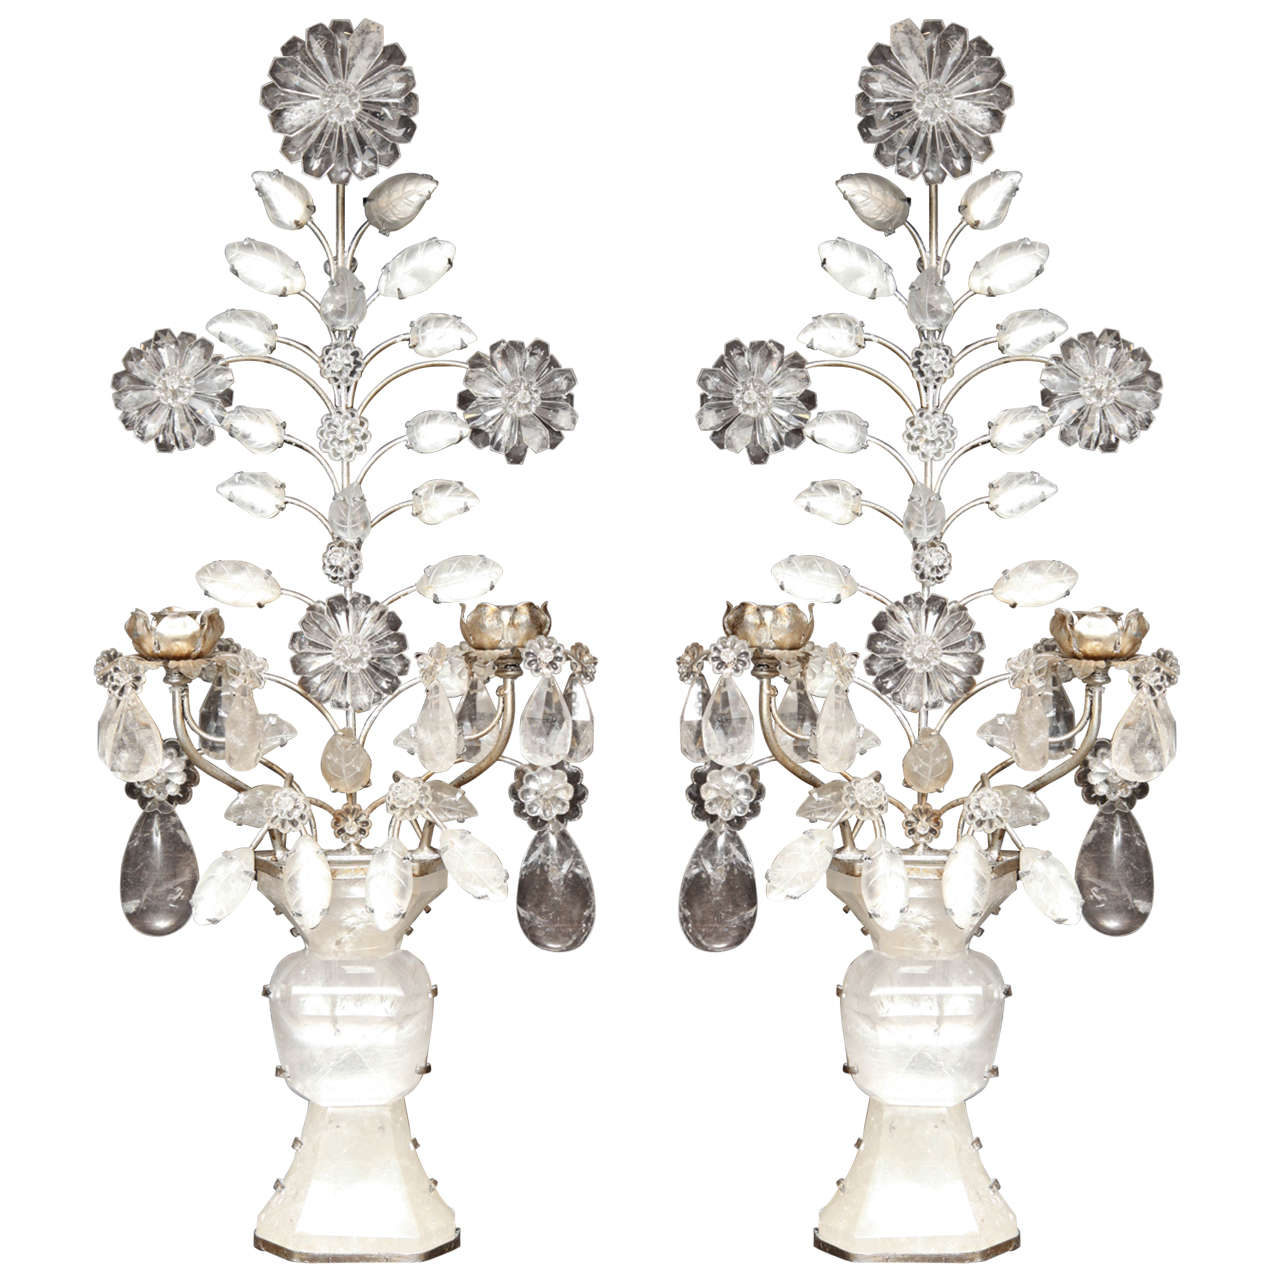 Pair of Double-Light Rock Crystal Quartz and Silvered Bronze Wall Sconces